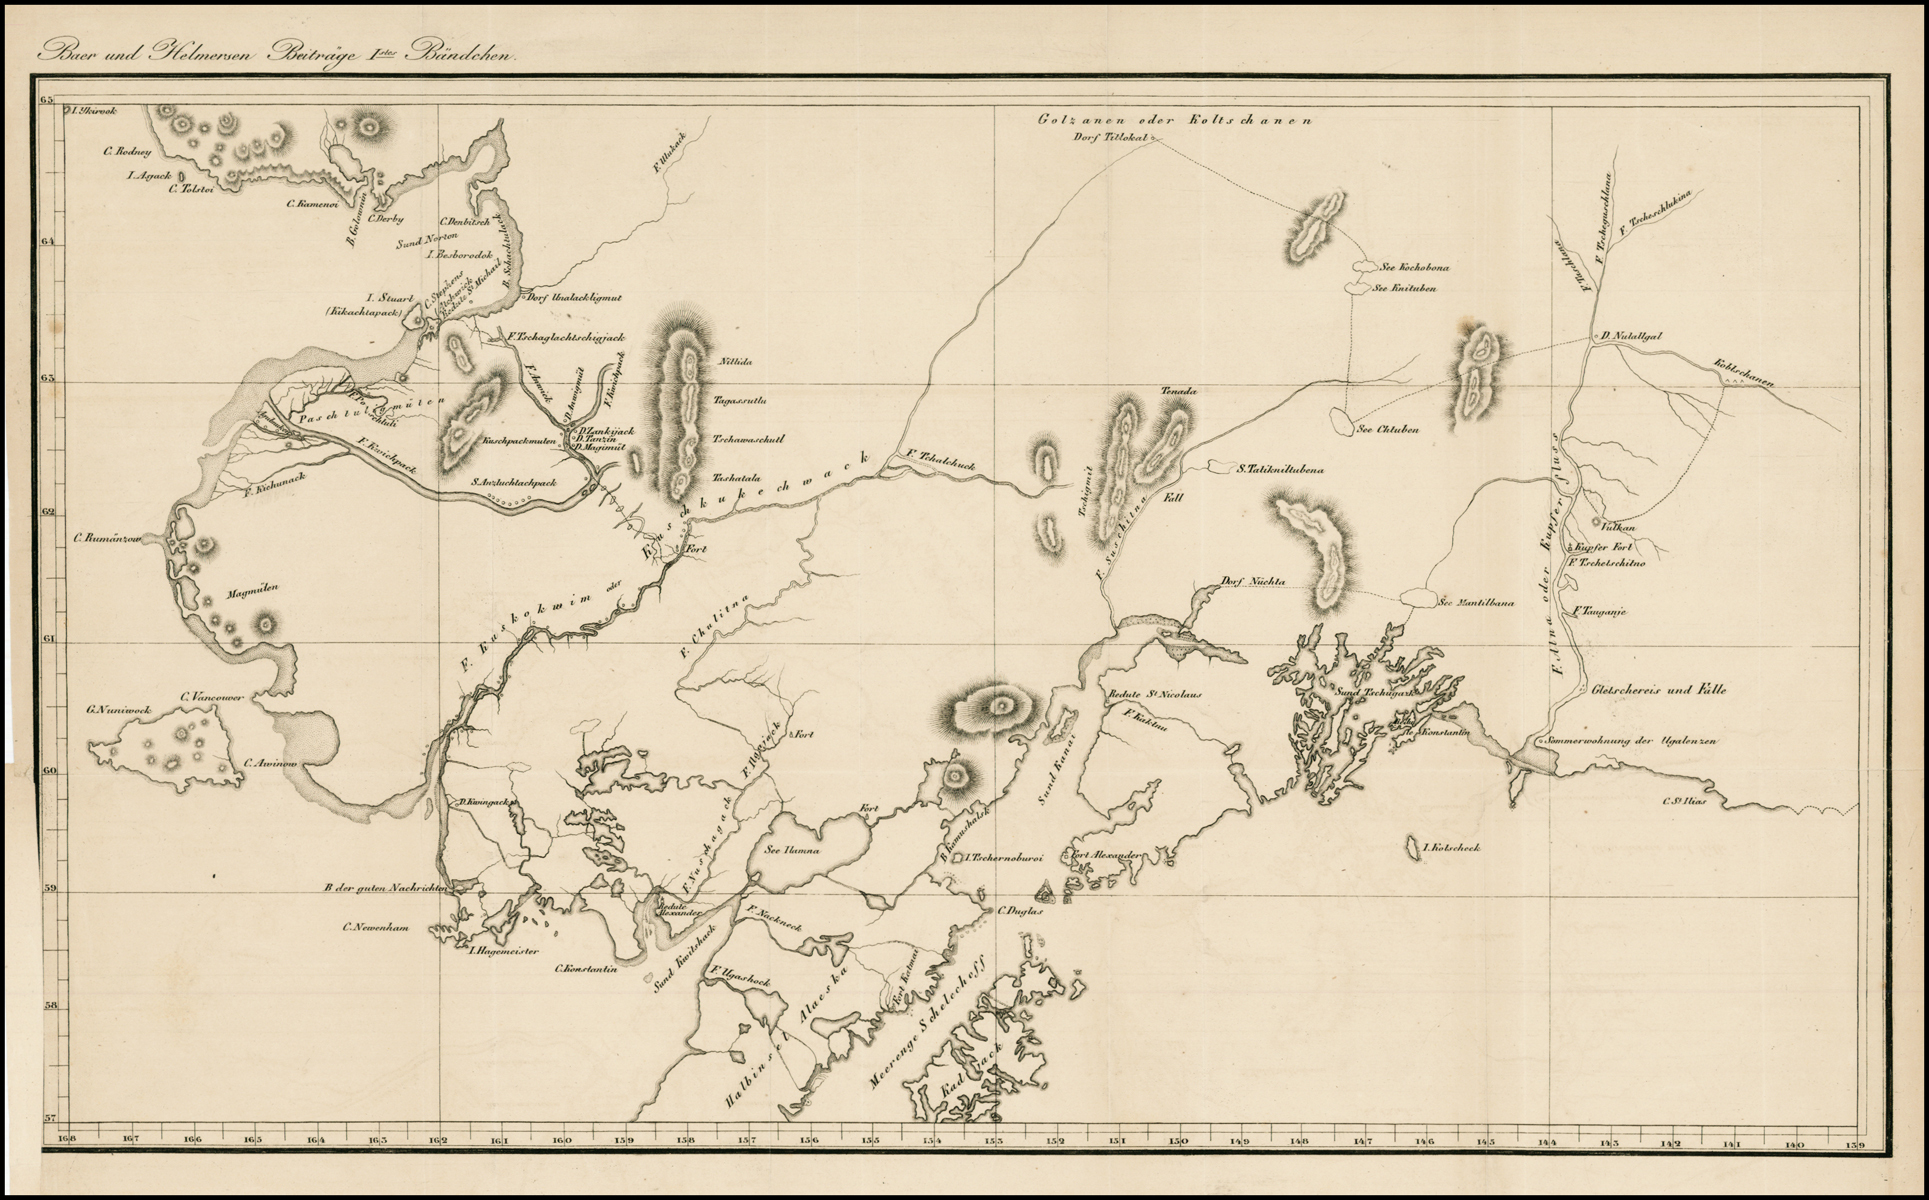 Unled Russian Map of Part of Alaska] - Barry Lawrence ... on map of portsmouth island, map of richmond island, map of atka island, map of jackson island, map of st. paul island, map of aleutian islands, map of pribilof islands, map of raspberry island, map of wrangel island, map of faial island, map of whale island, map of shelikof strait, map of arctic national wildlife refuge, map of bremerton island, map of seward peninsula, map of prince of wales, map of ketchikan island, map of wrangell island, map of door peninsula, map of sitkalidak island,